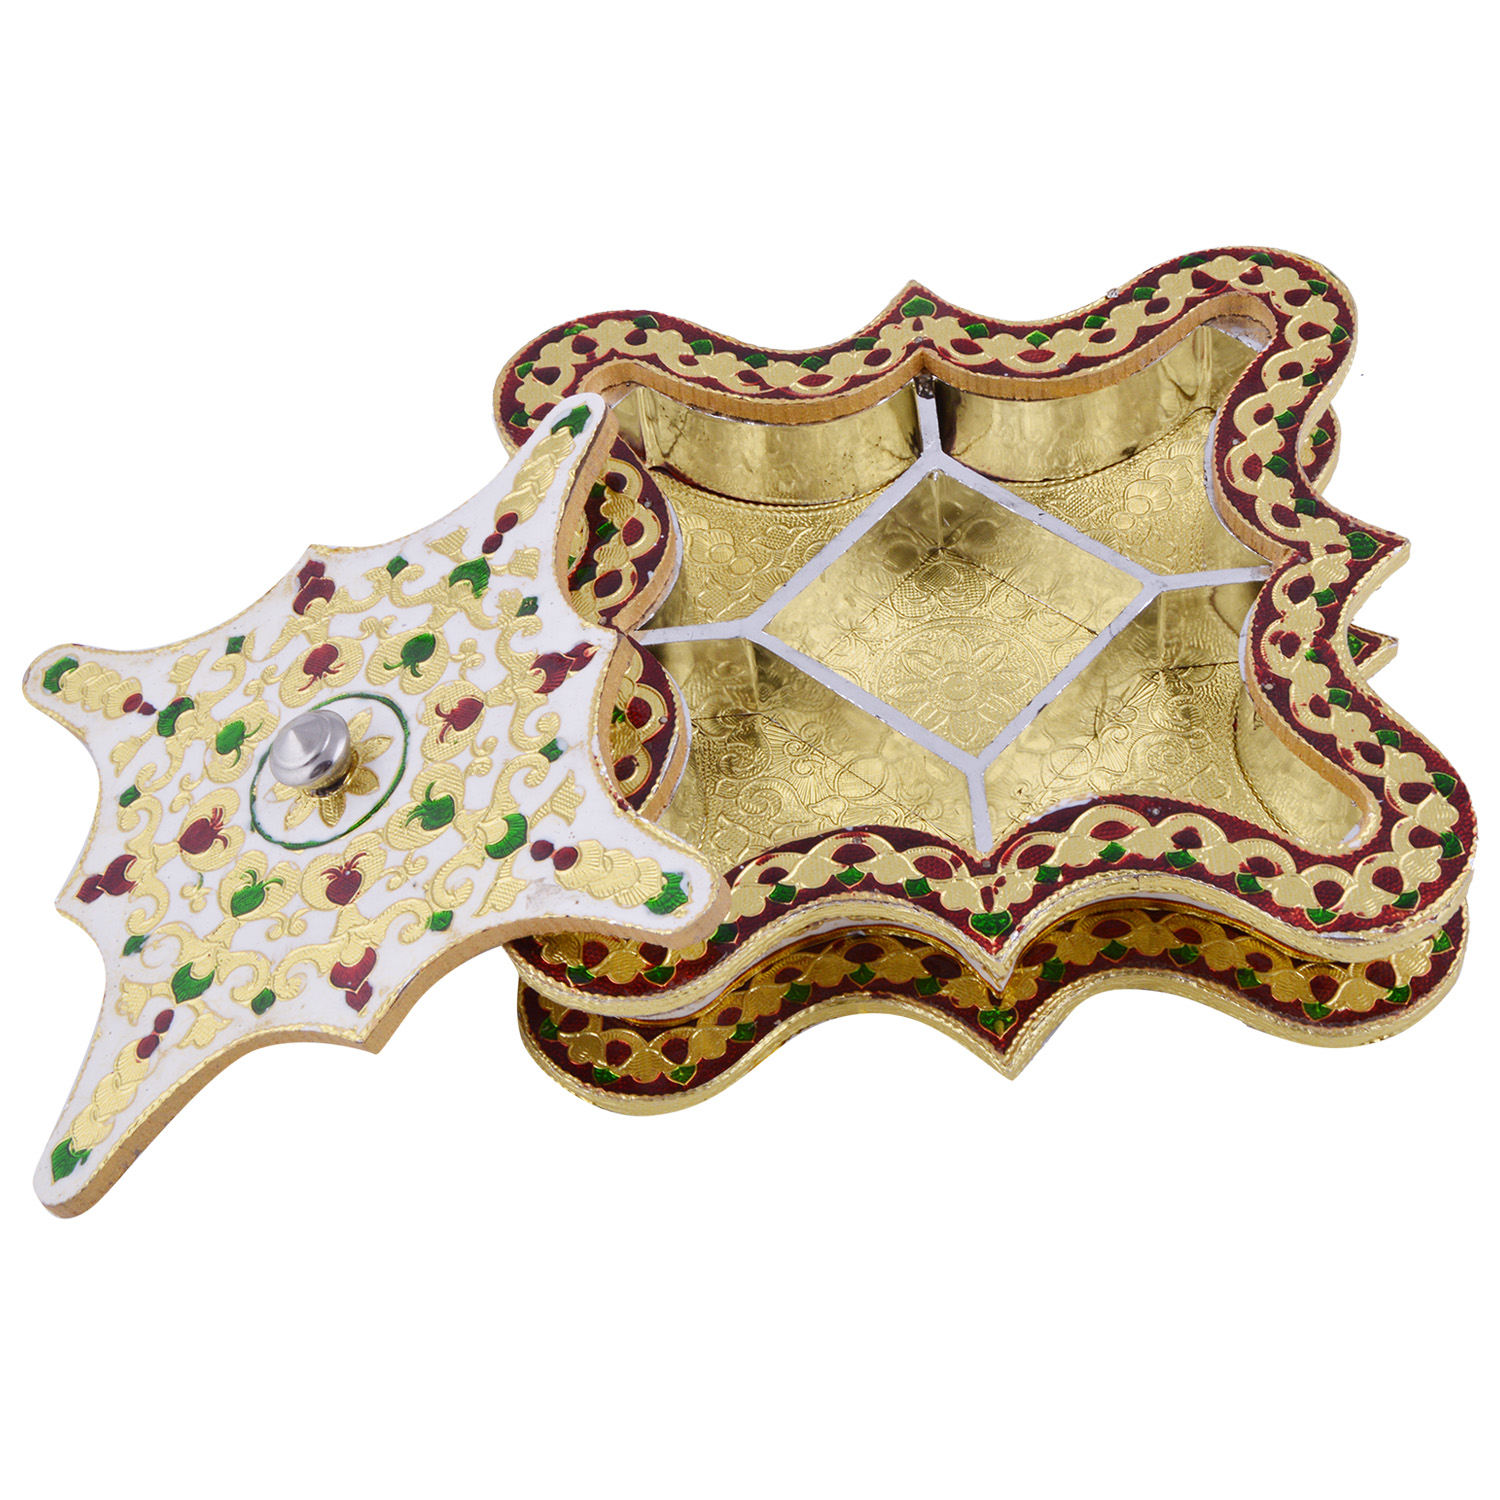 JK Handicraft Rangoli No. 2 Shaped Golden White Meena Dry Fruit/ Multipurpose Box  (20cmX20cmX4cm)